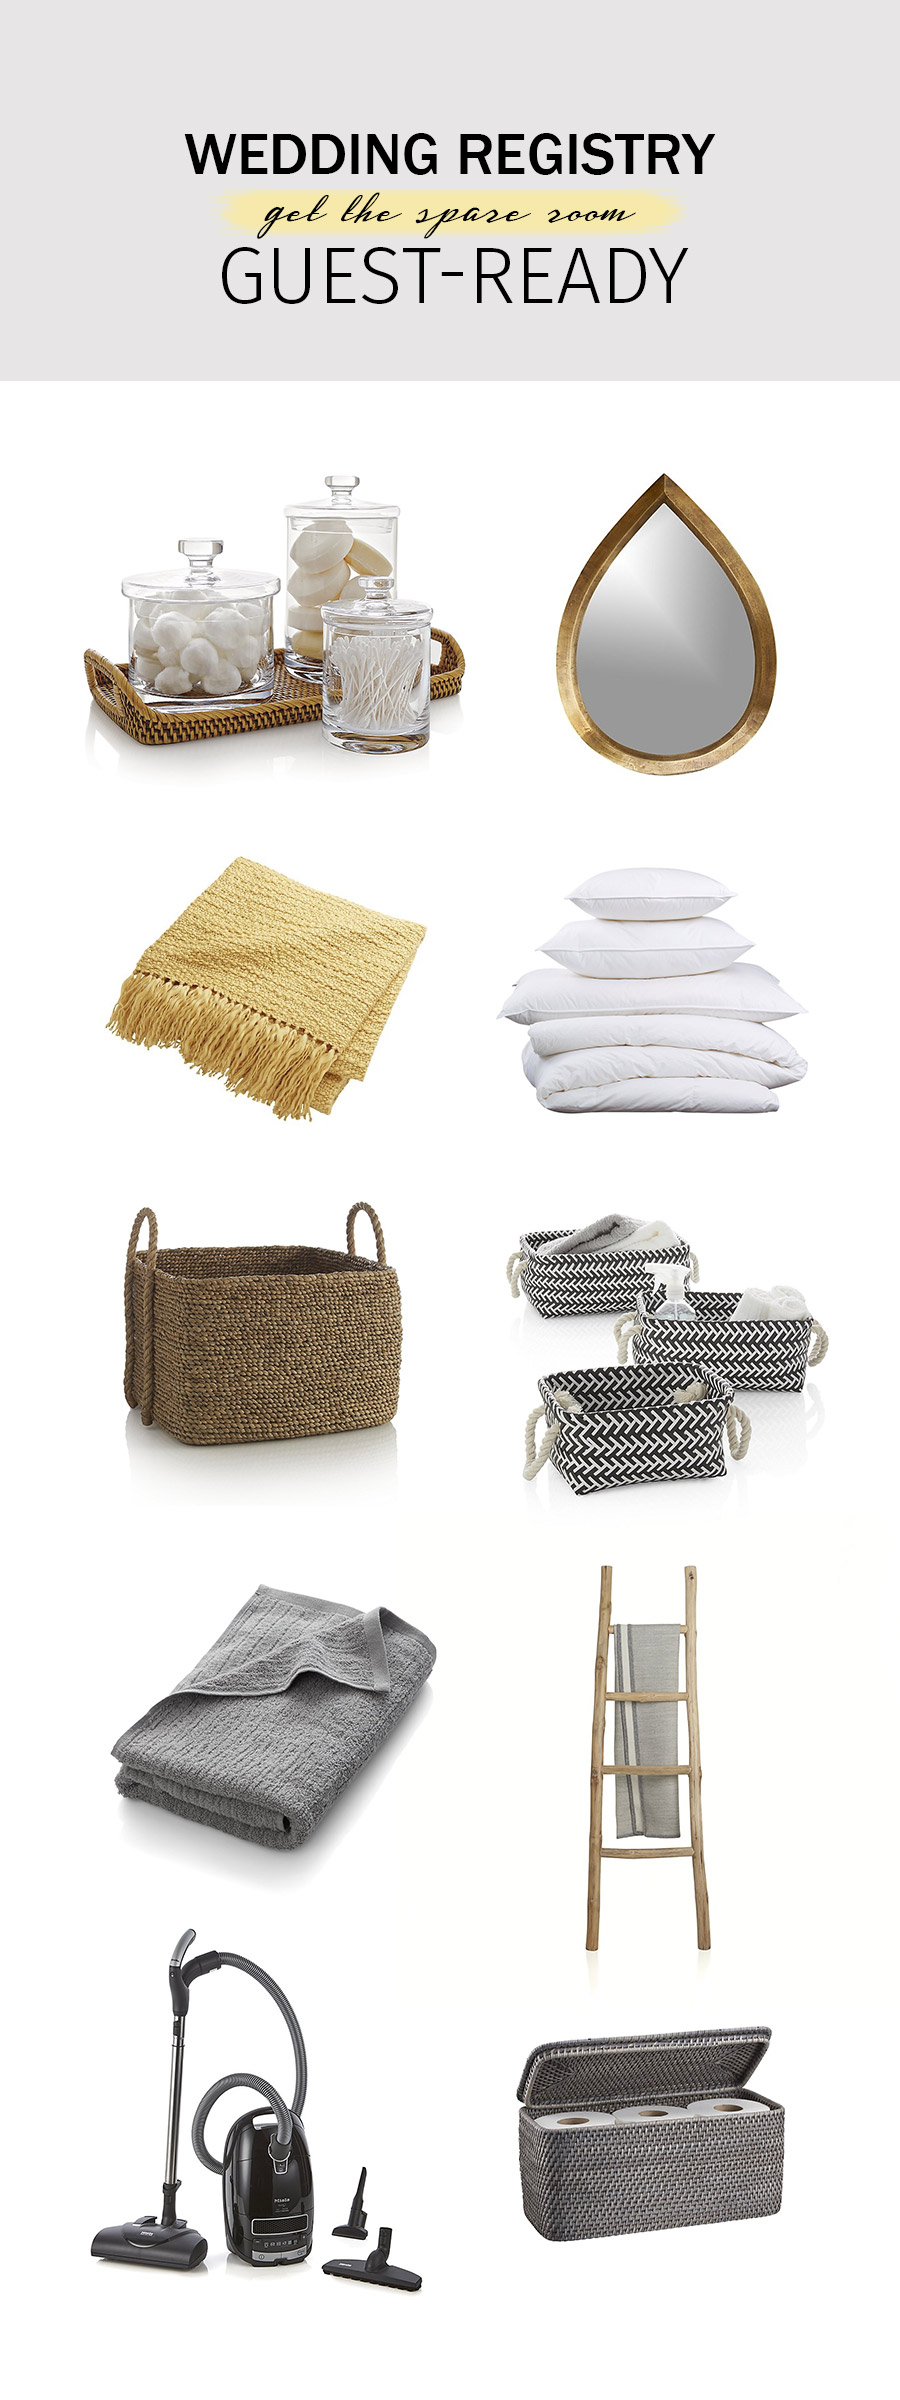 crate and barrel wedding registry ideas 2018 guest ready spare room laundry cleaning solution